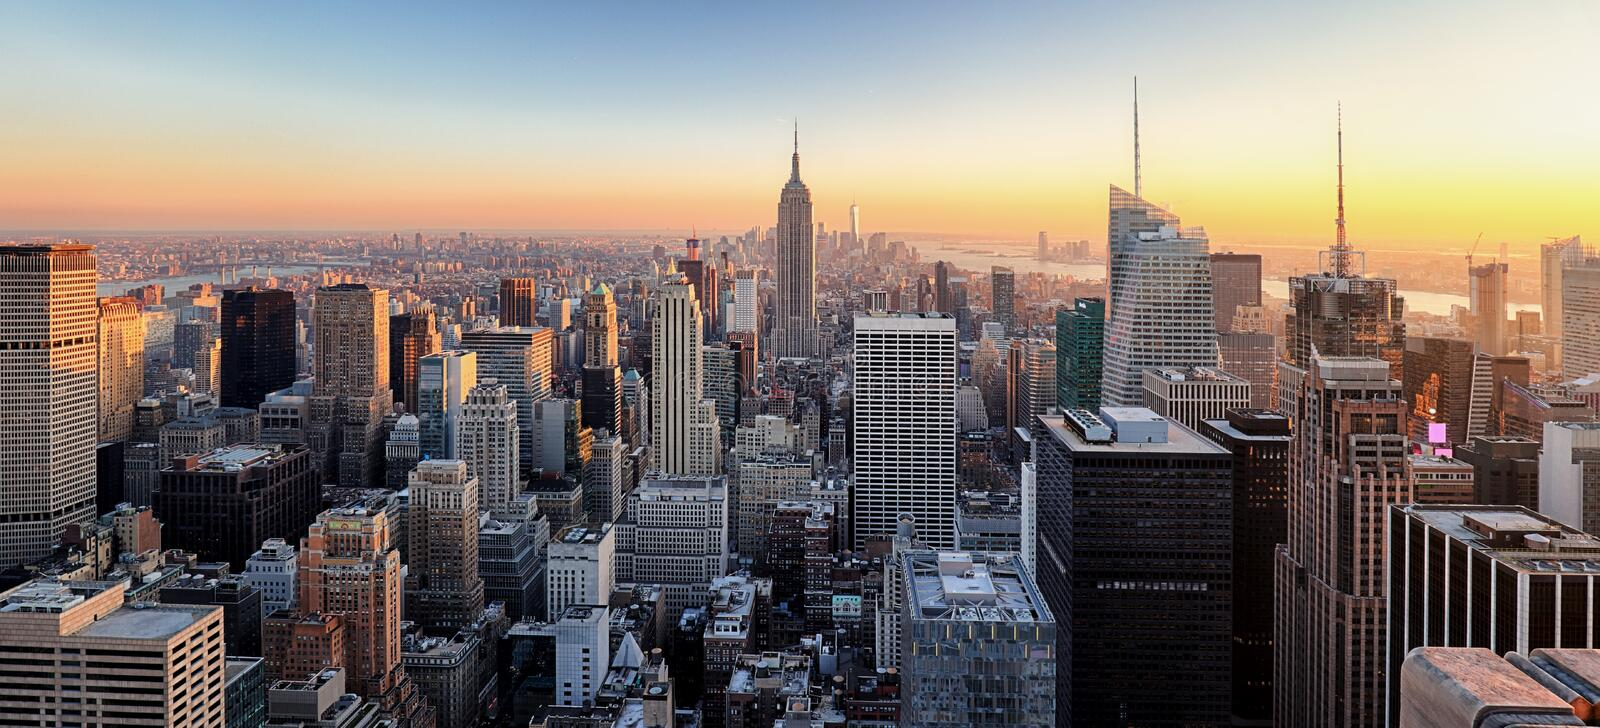 New York City. Manhattan downtown skyline with illuminated Empire State Building and skyscrapers at sunset. royalty free stock photos